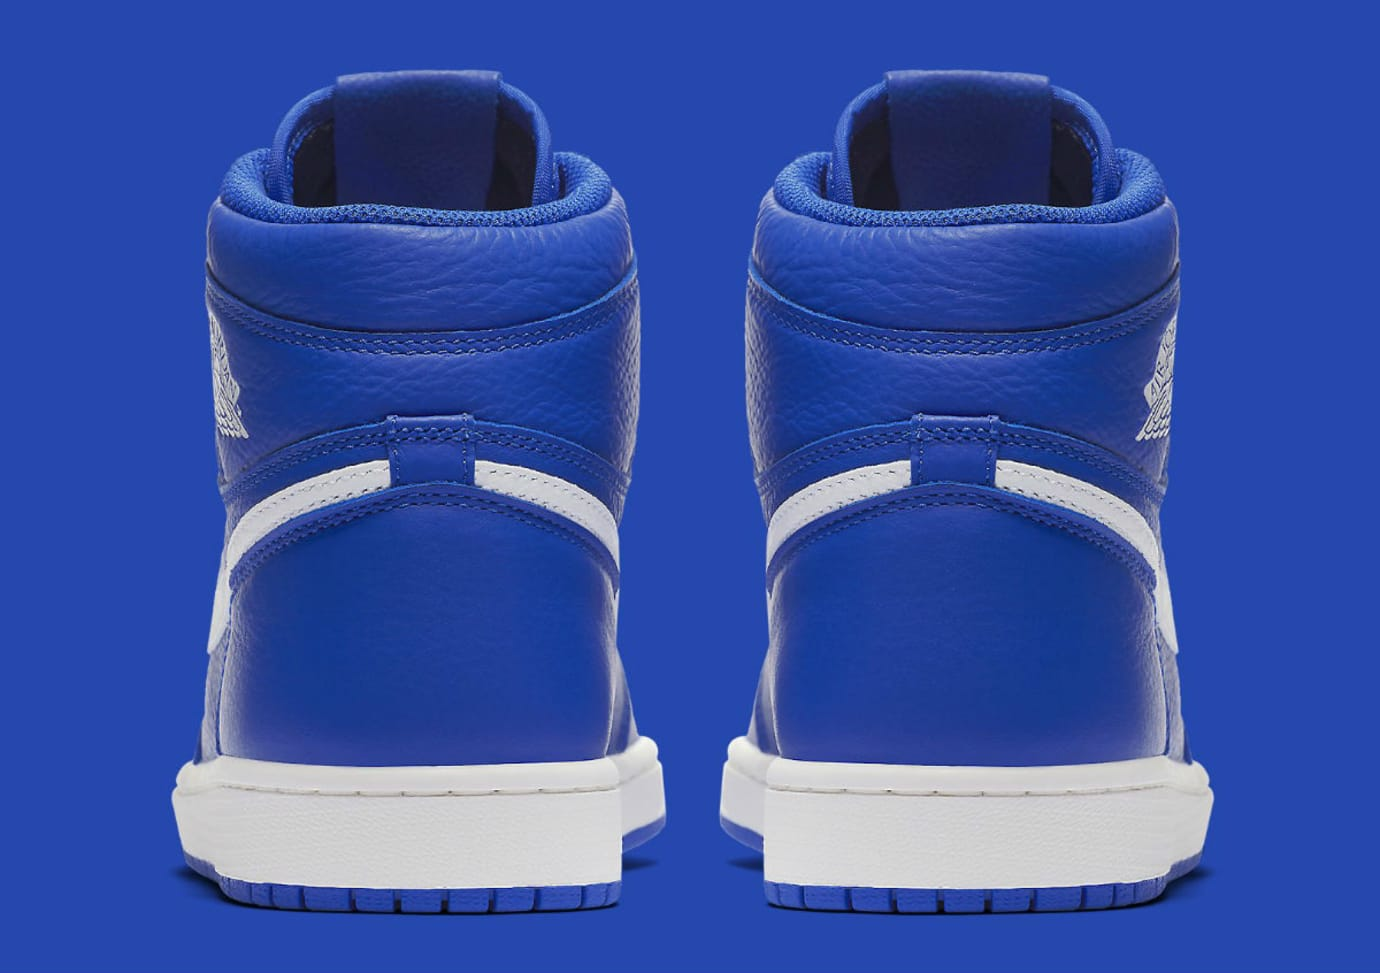 0ce344111cecf7 Image via Nike Air Jordan 1 He Got Game Hyper Royal Release Date 555088-401  Heel